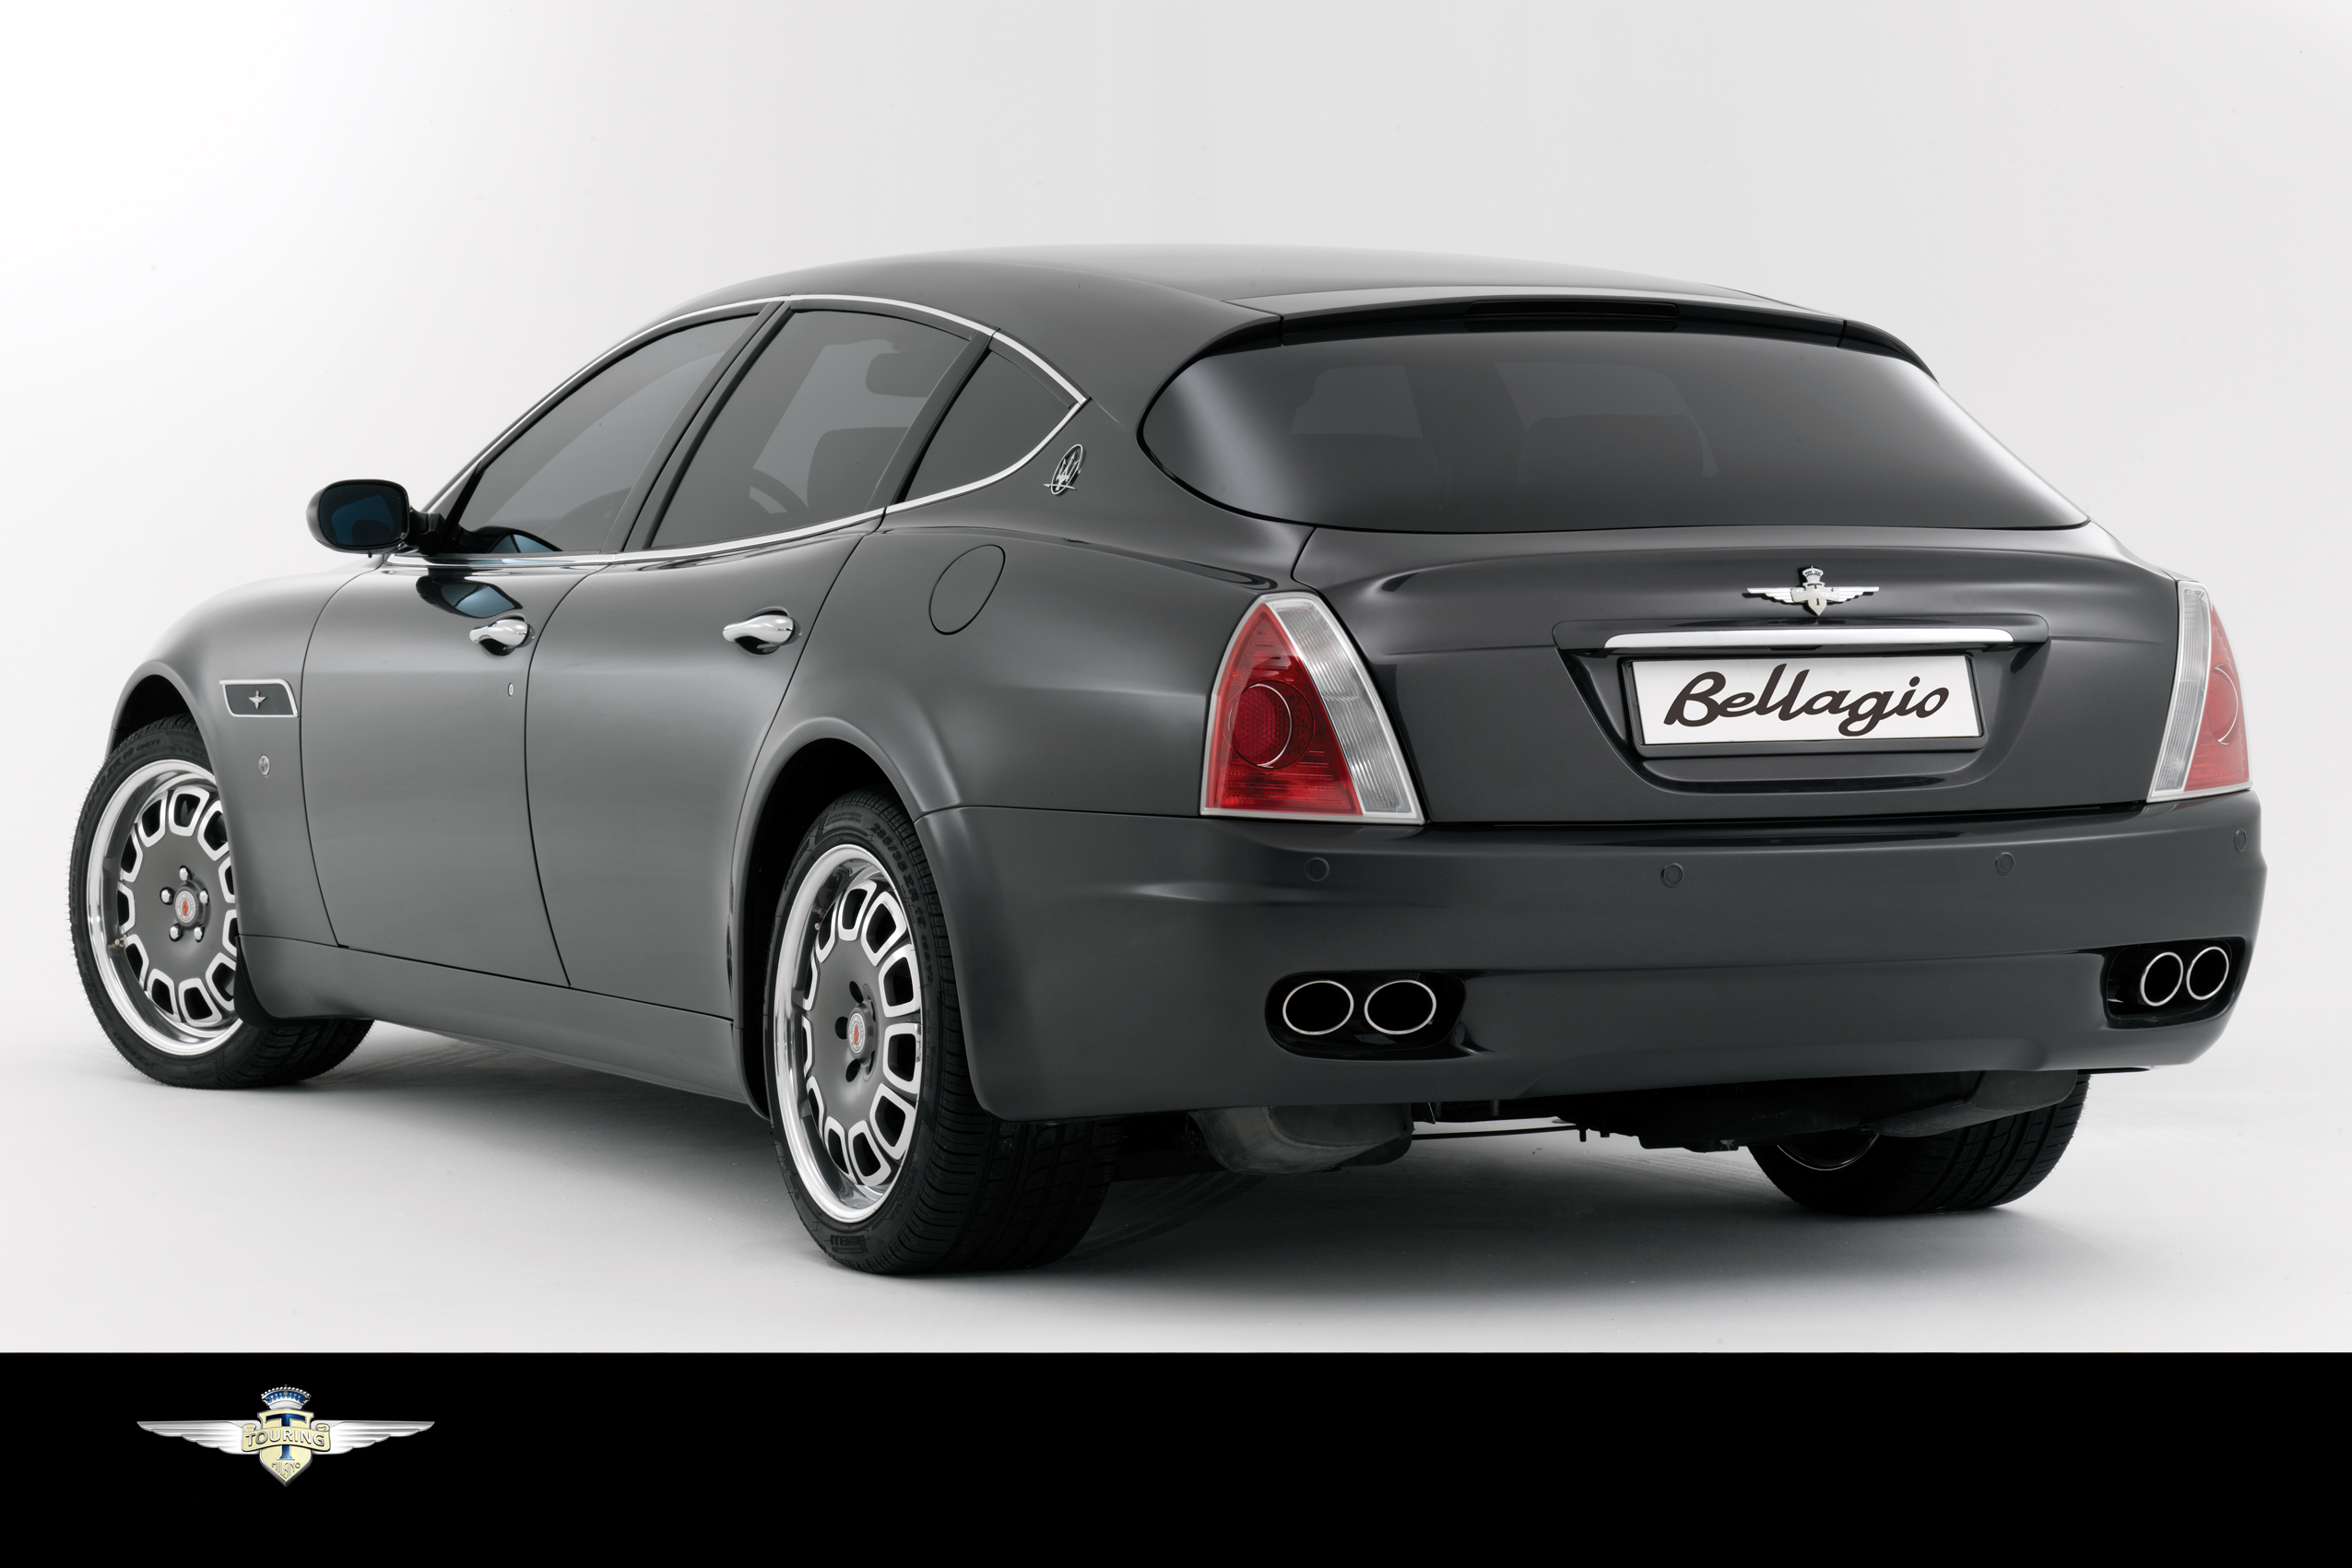 Alternative to BMW M5 Touring: Maserati Quattroporte Bellagio Fastback Touring-bellagio2.jpg